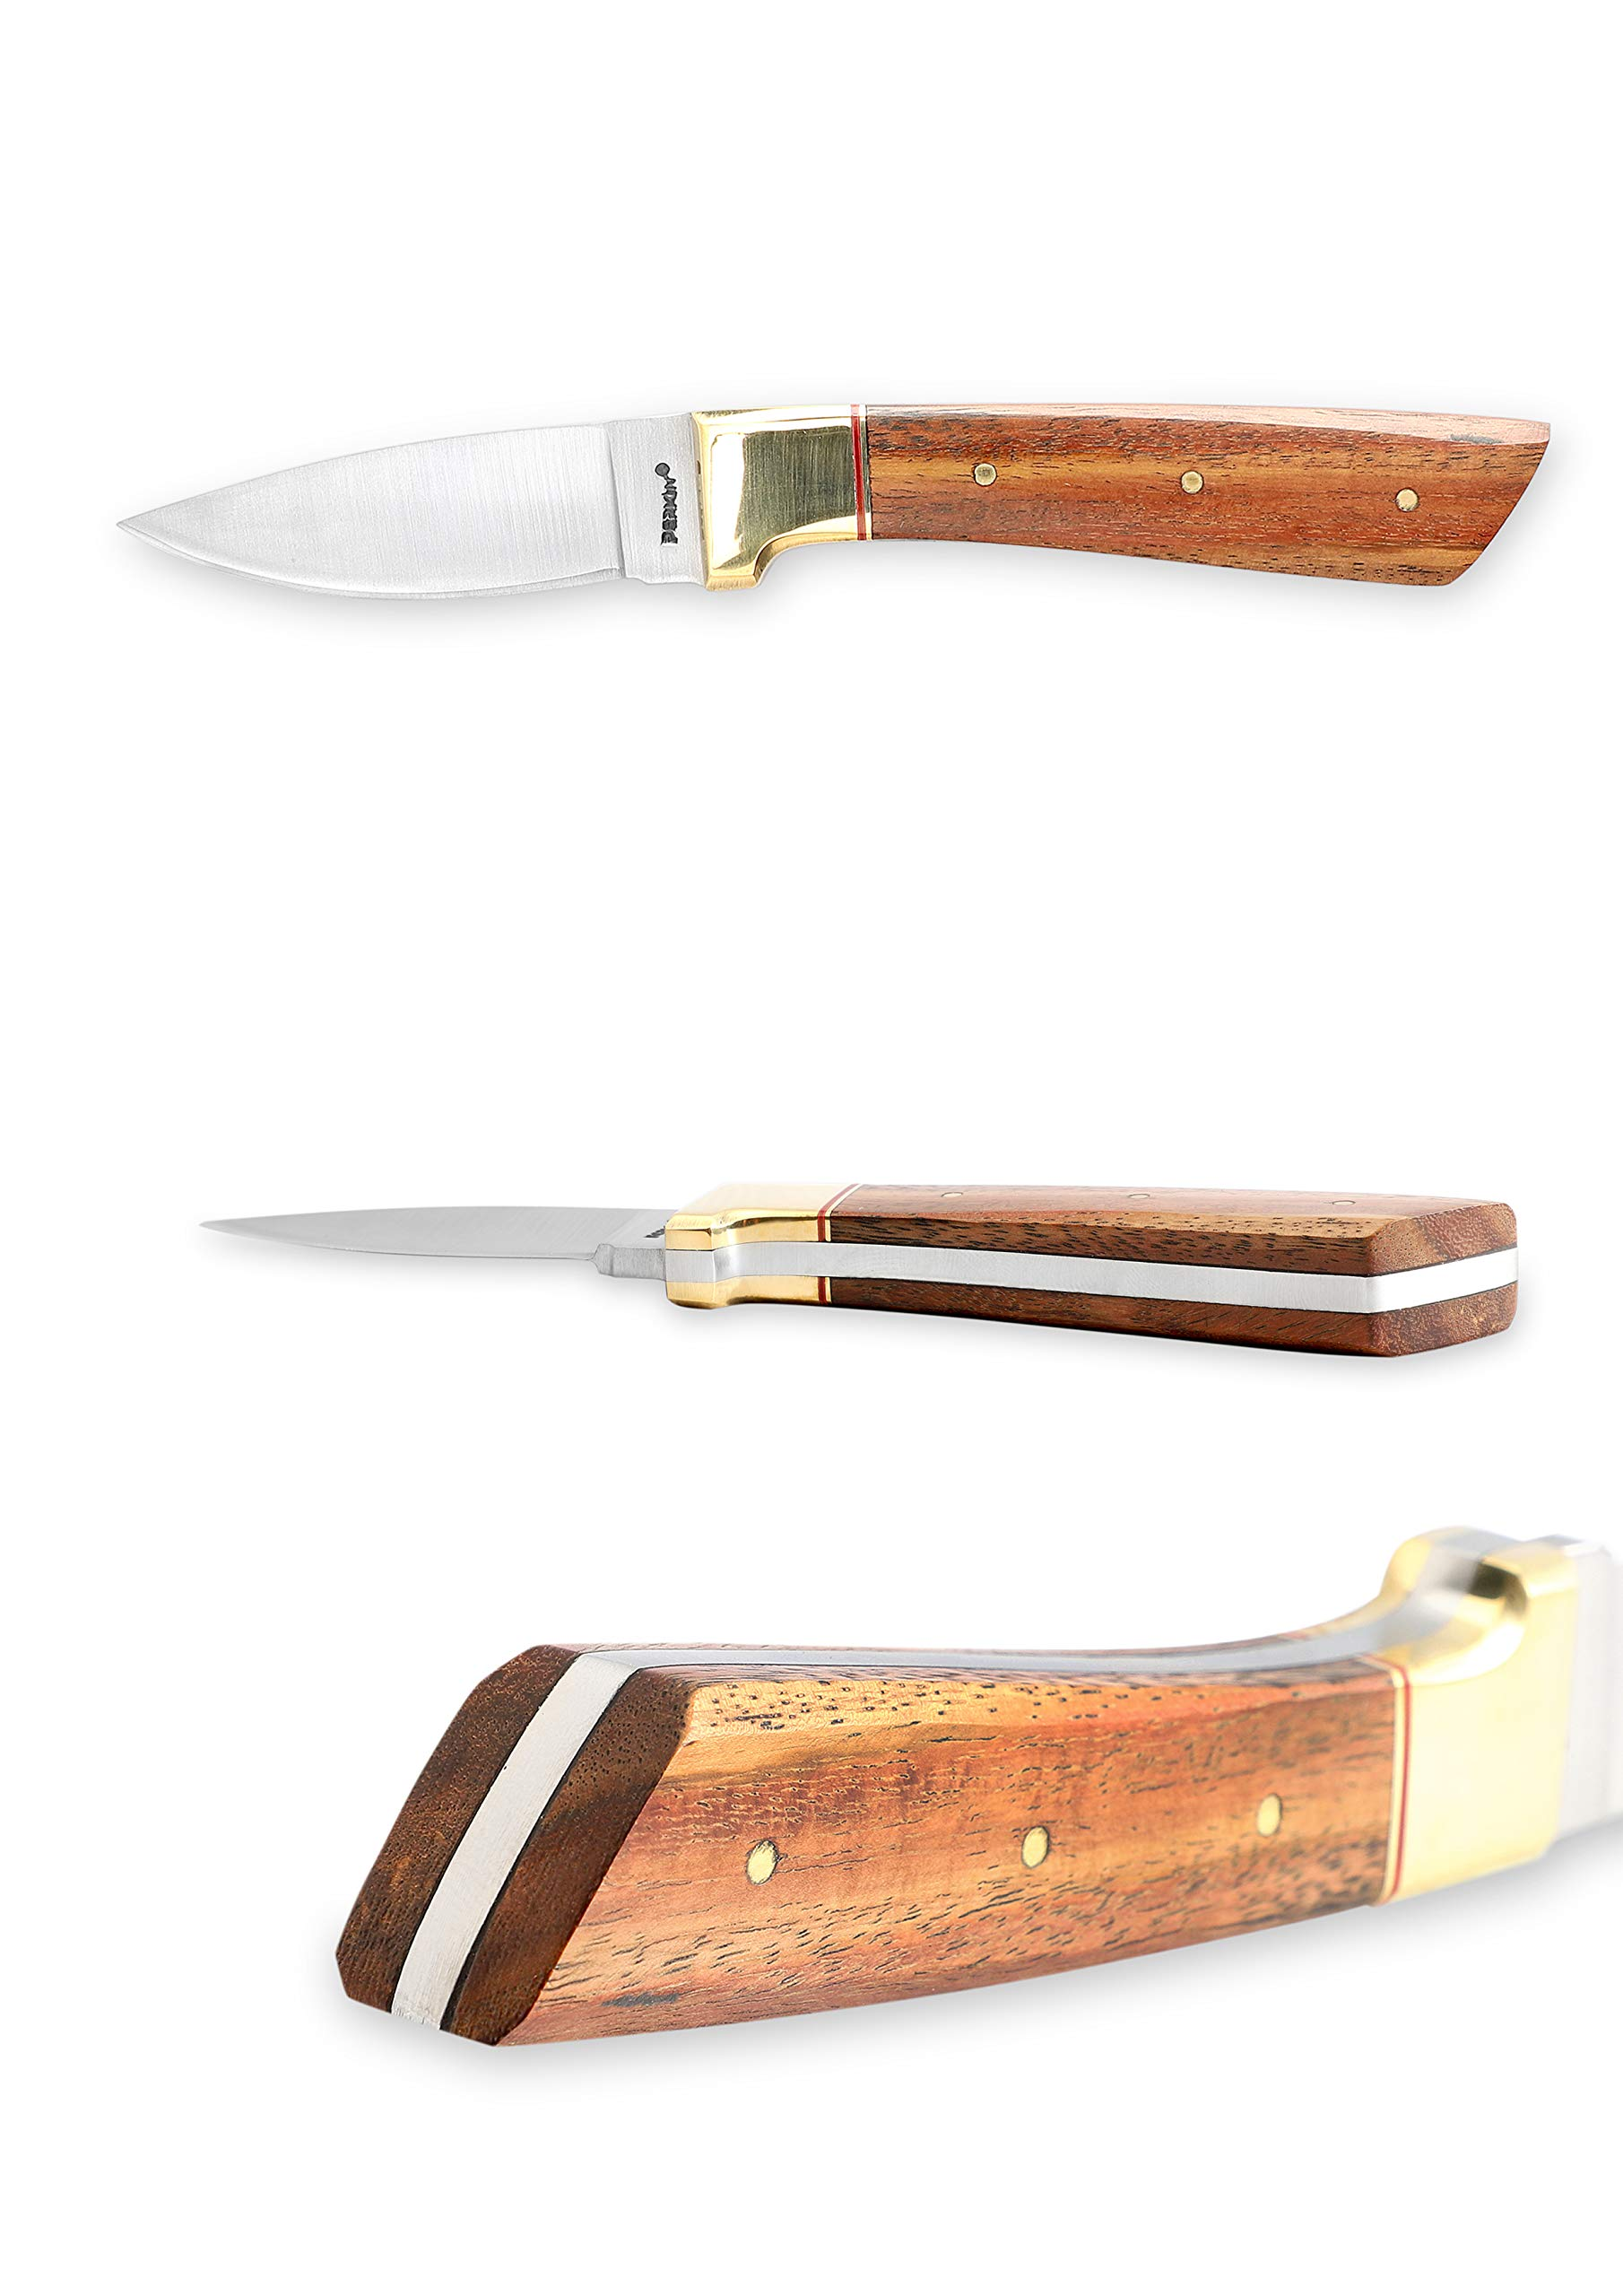 Perkin Knives - Handmade Hunting Knife With Sheath- Work of Art